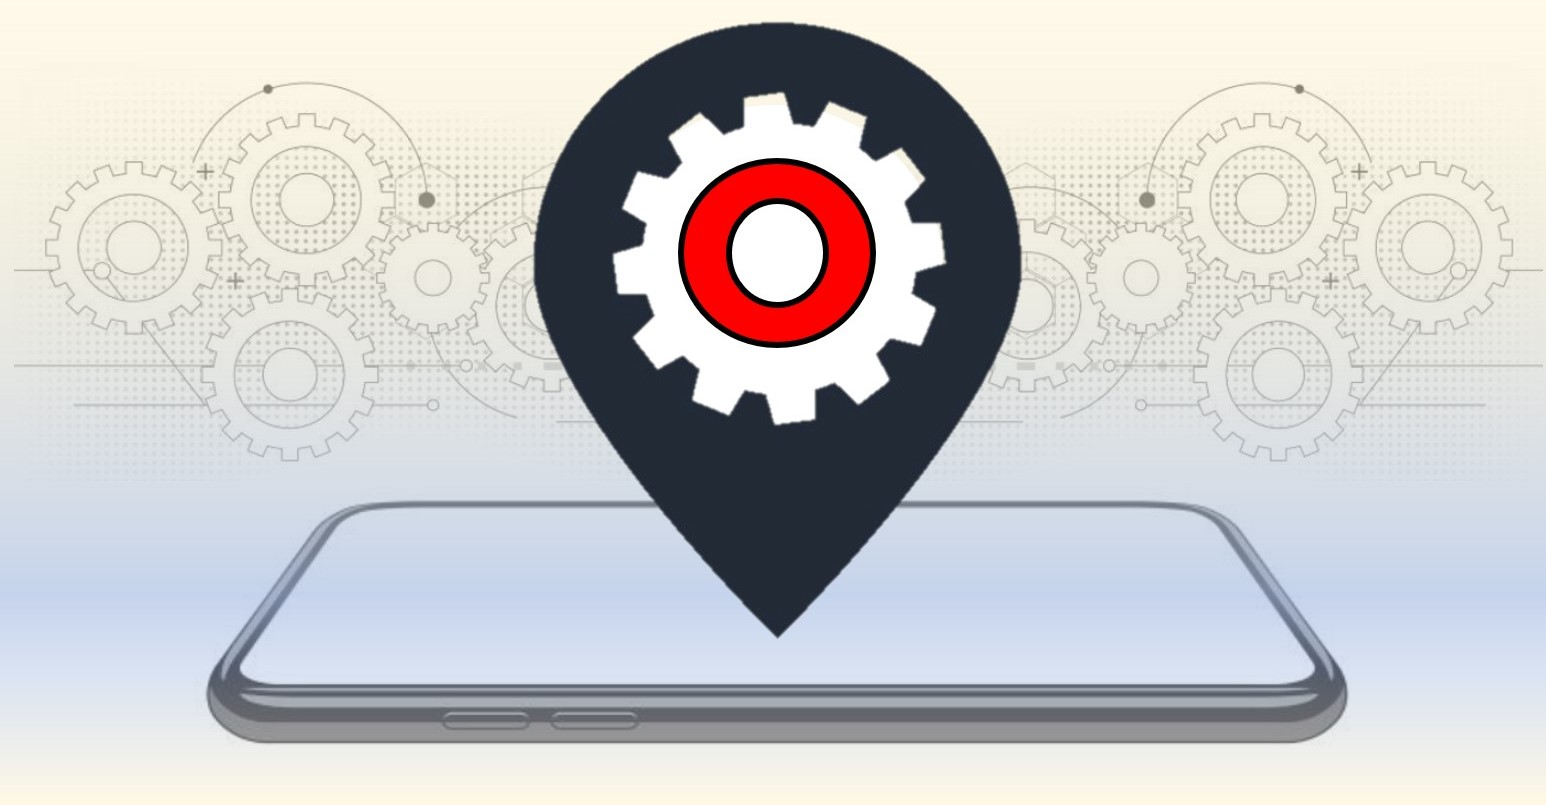 Illustrated mobile phone with a map point icon popping off the screen with working gears in the background